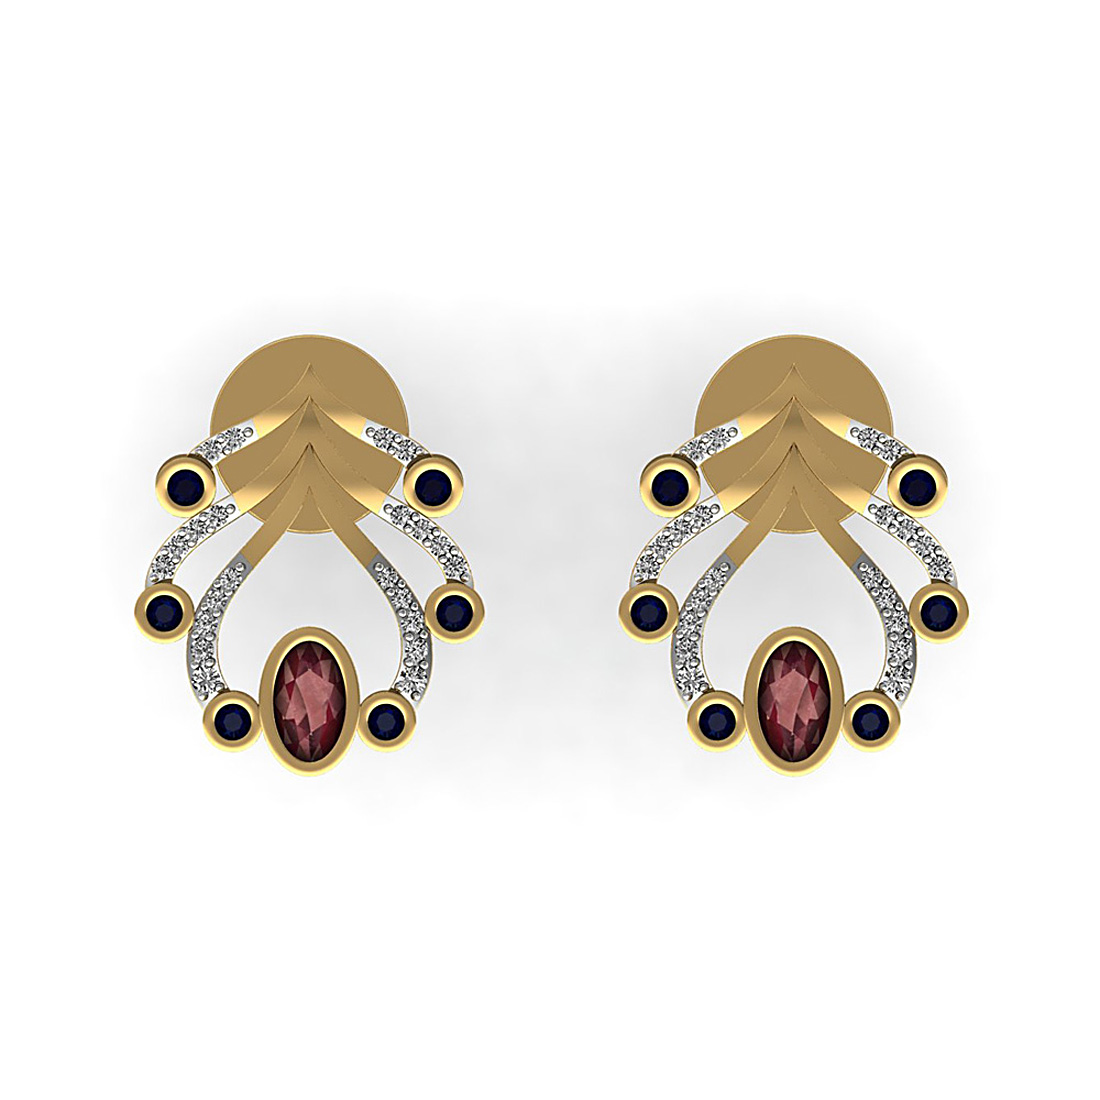 Natural diamond stud earrings made in 18k gold with gemstone